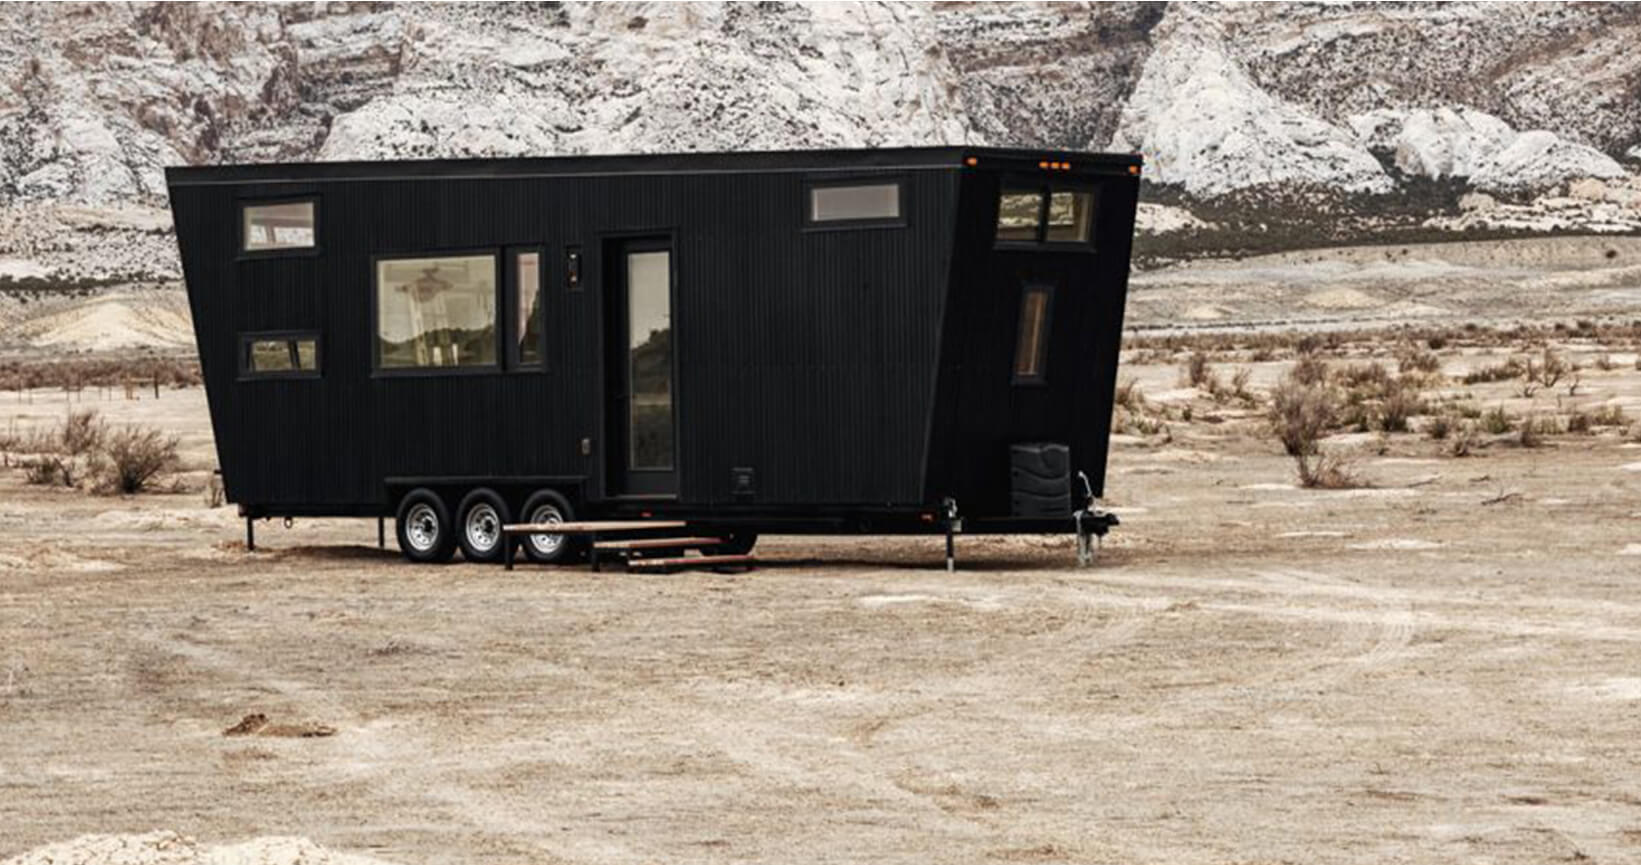 LAND ARK Drake RV